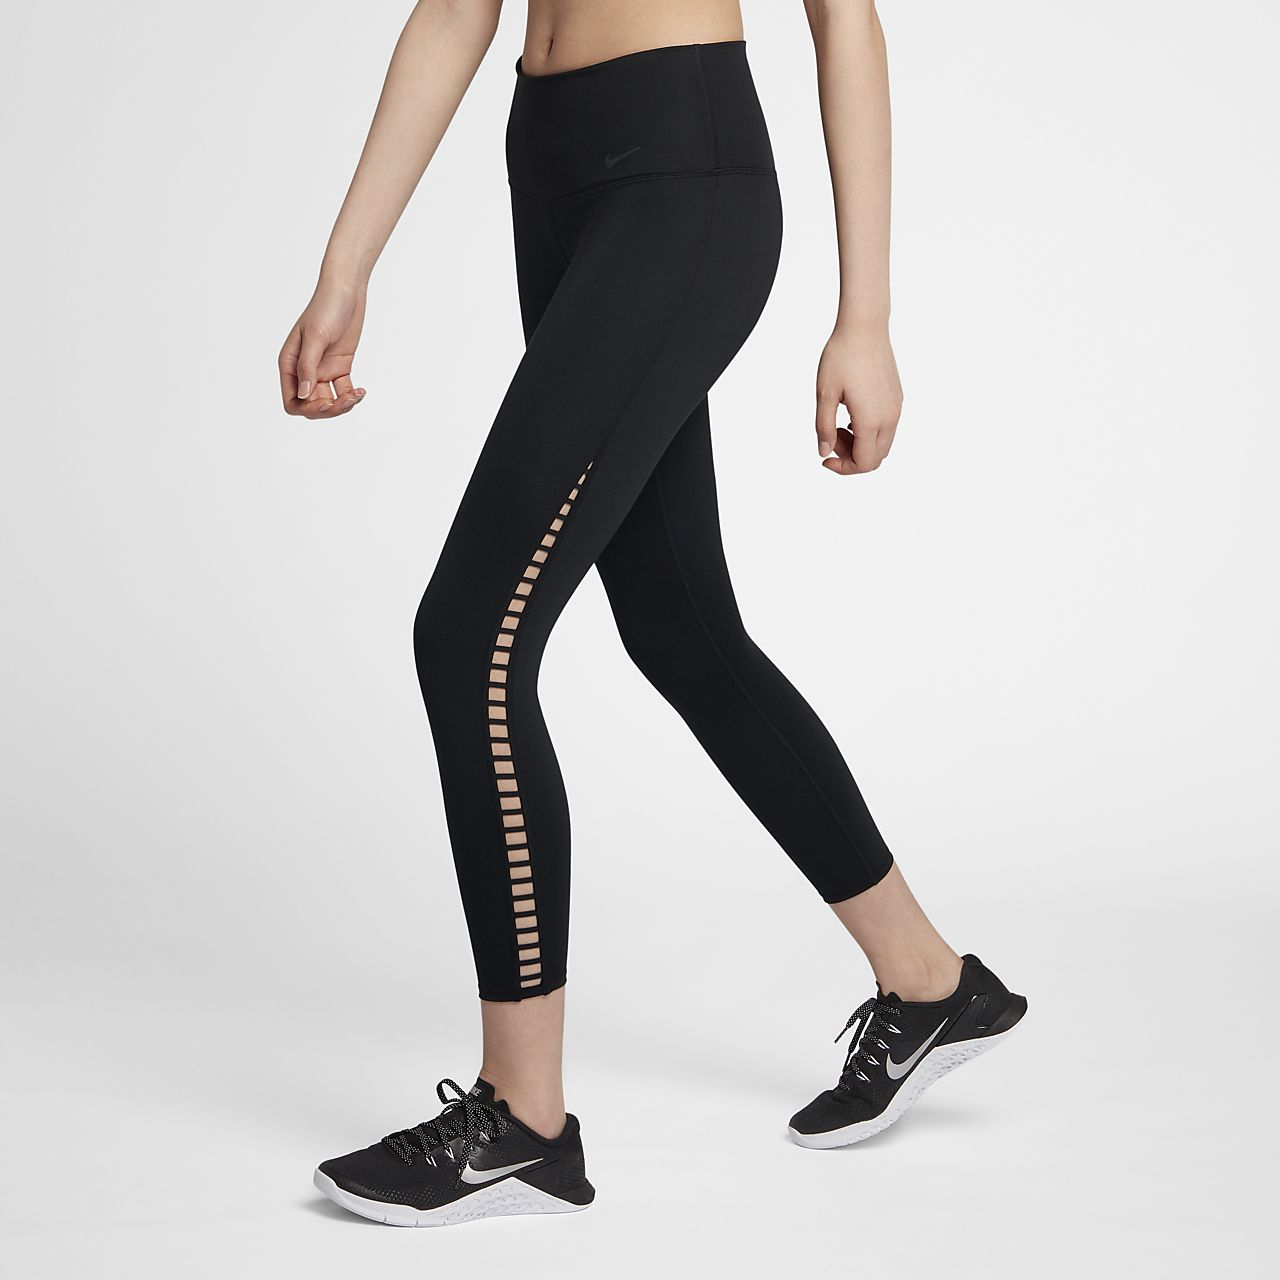 Nike Dri-FIT Power Women's 7/8 Yoga Training Tights